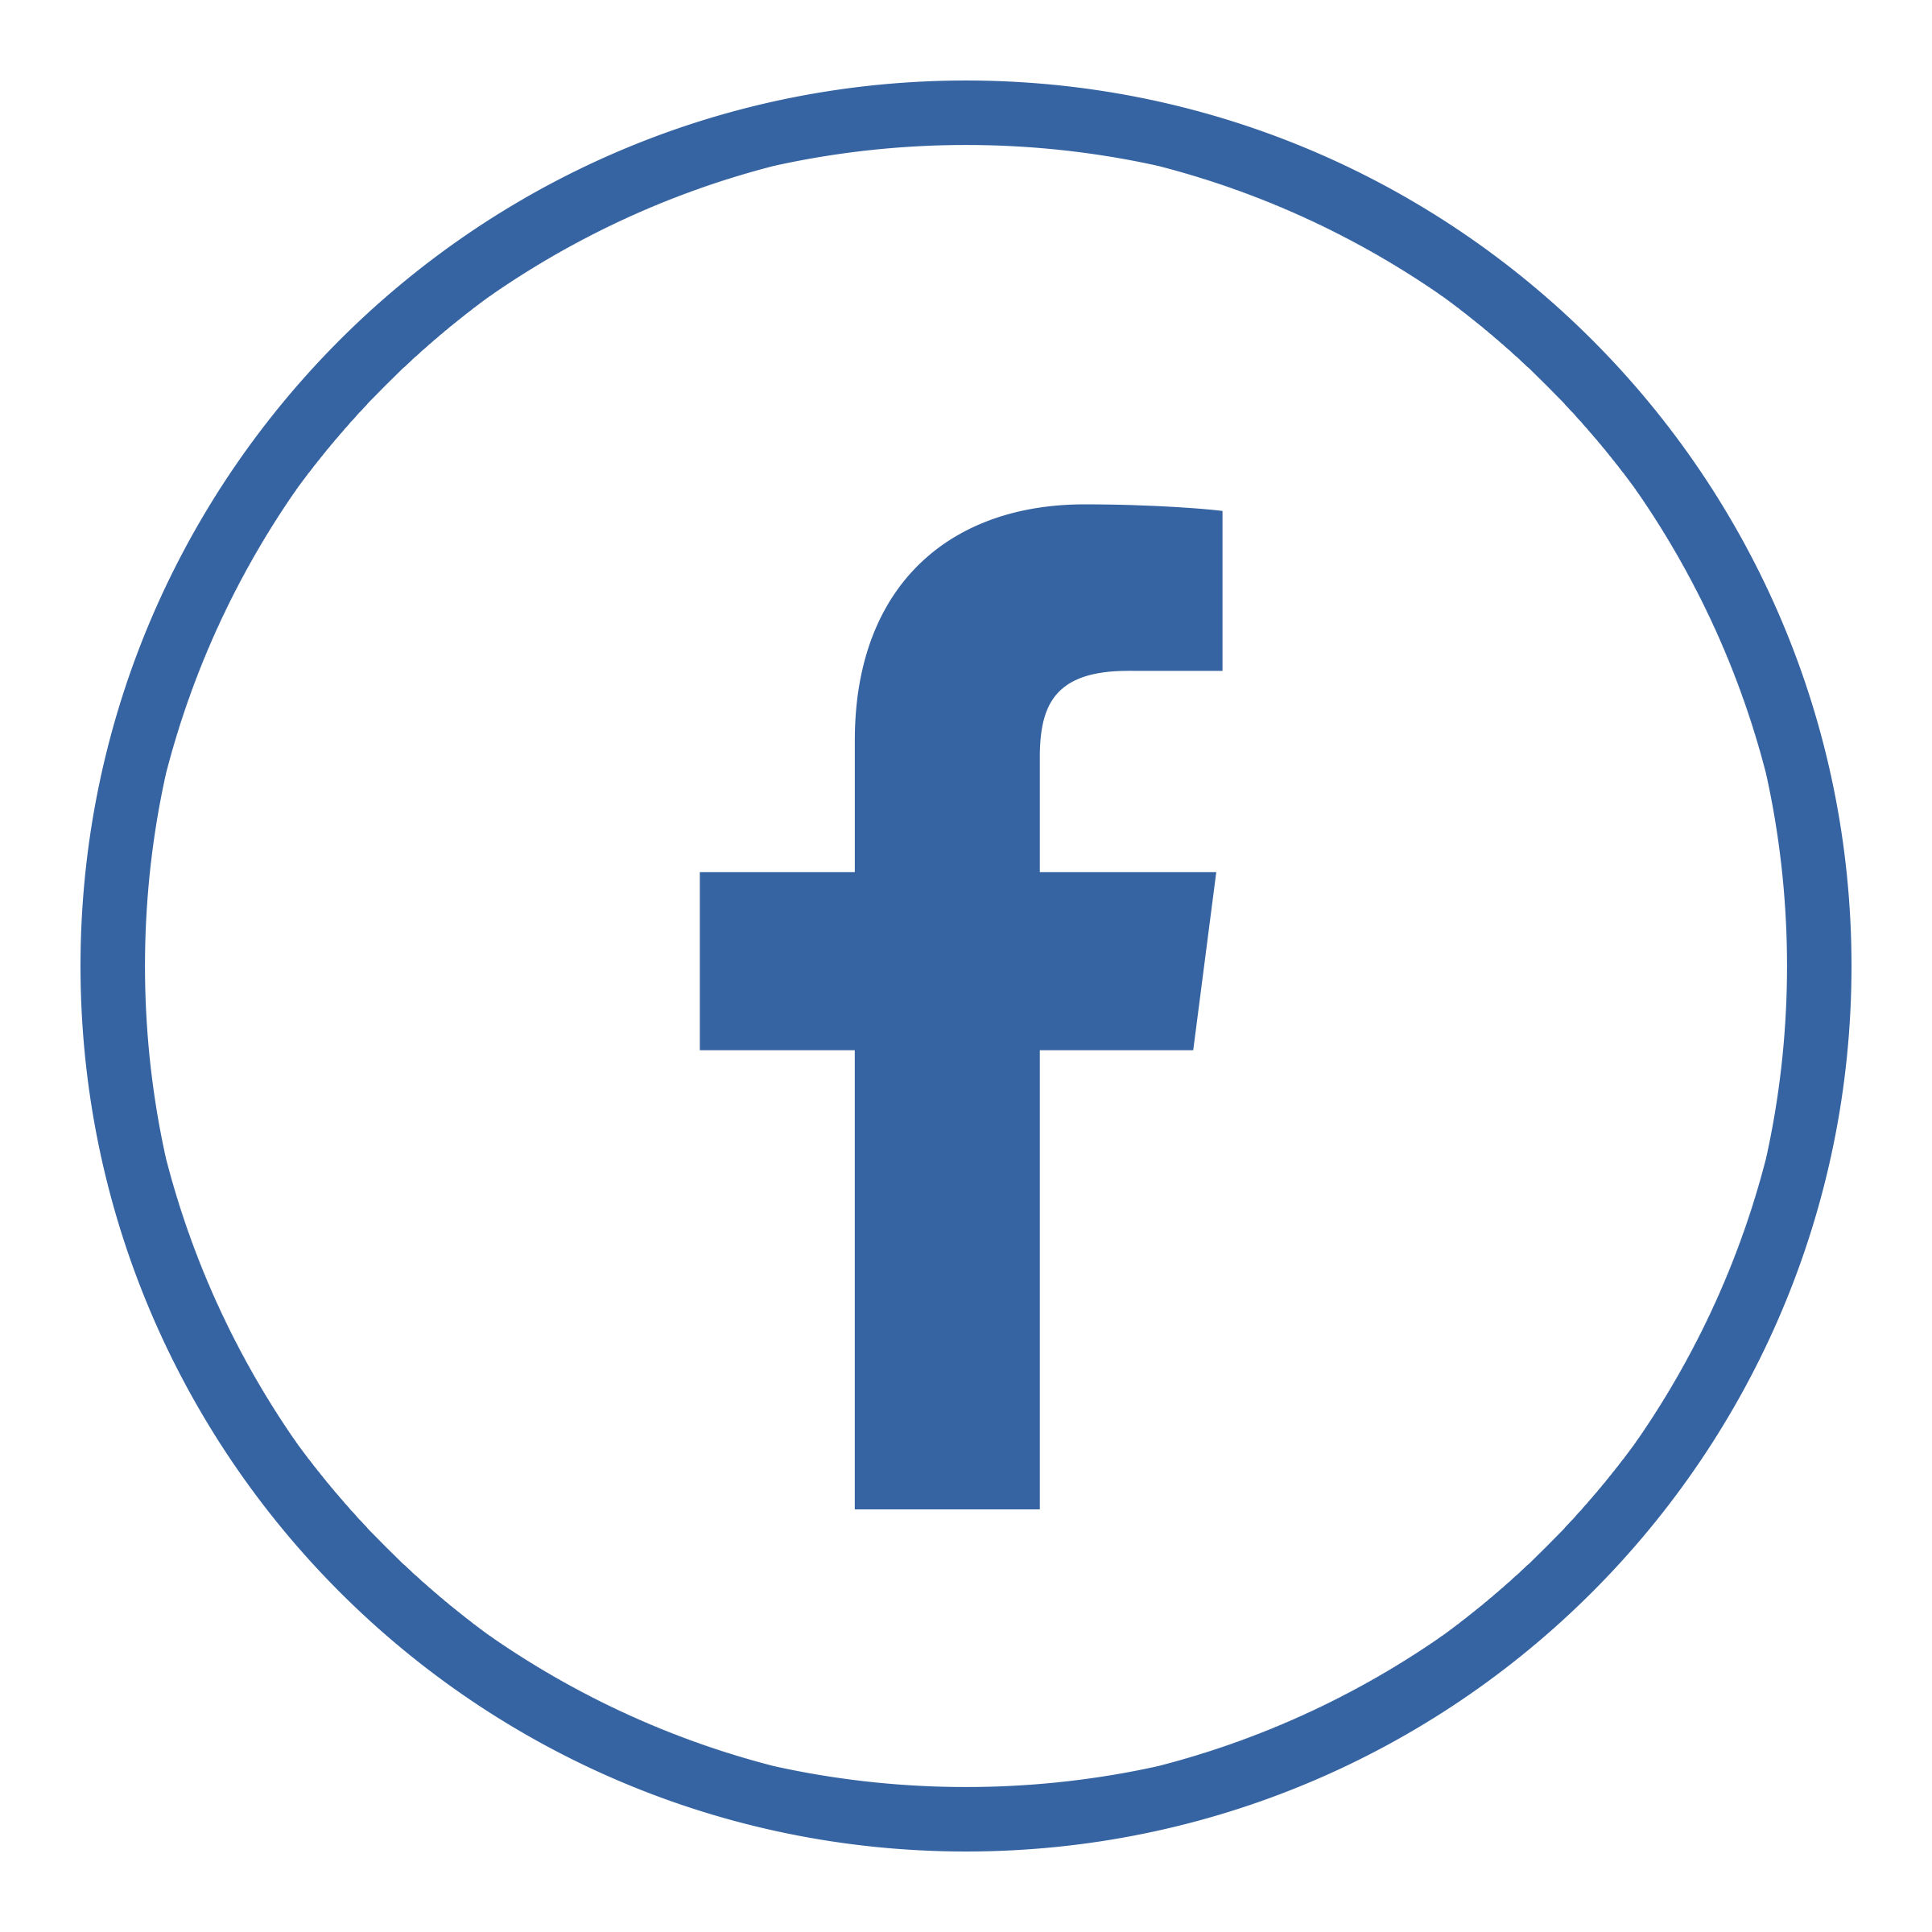 Logo Facebook Circle Png Pictures